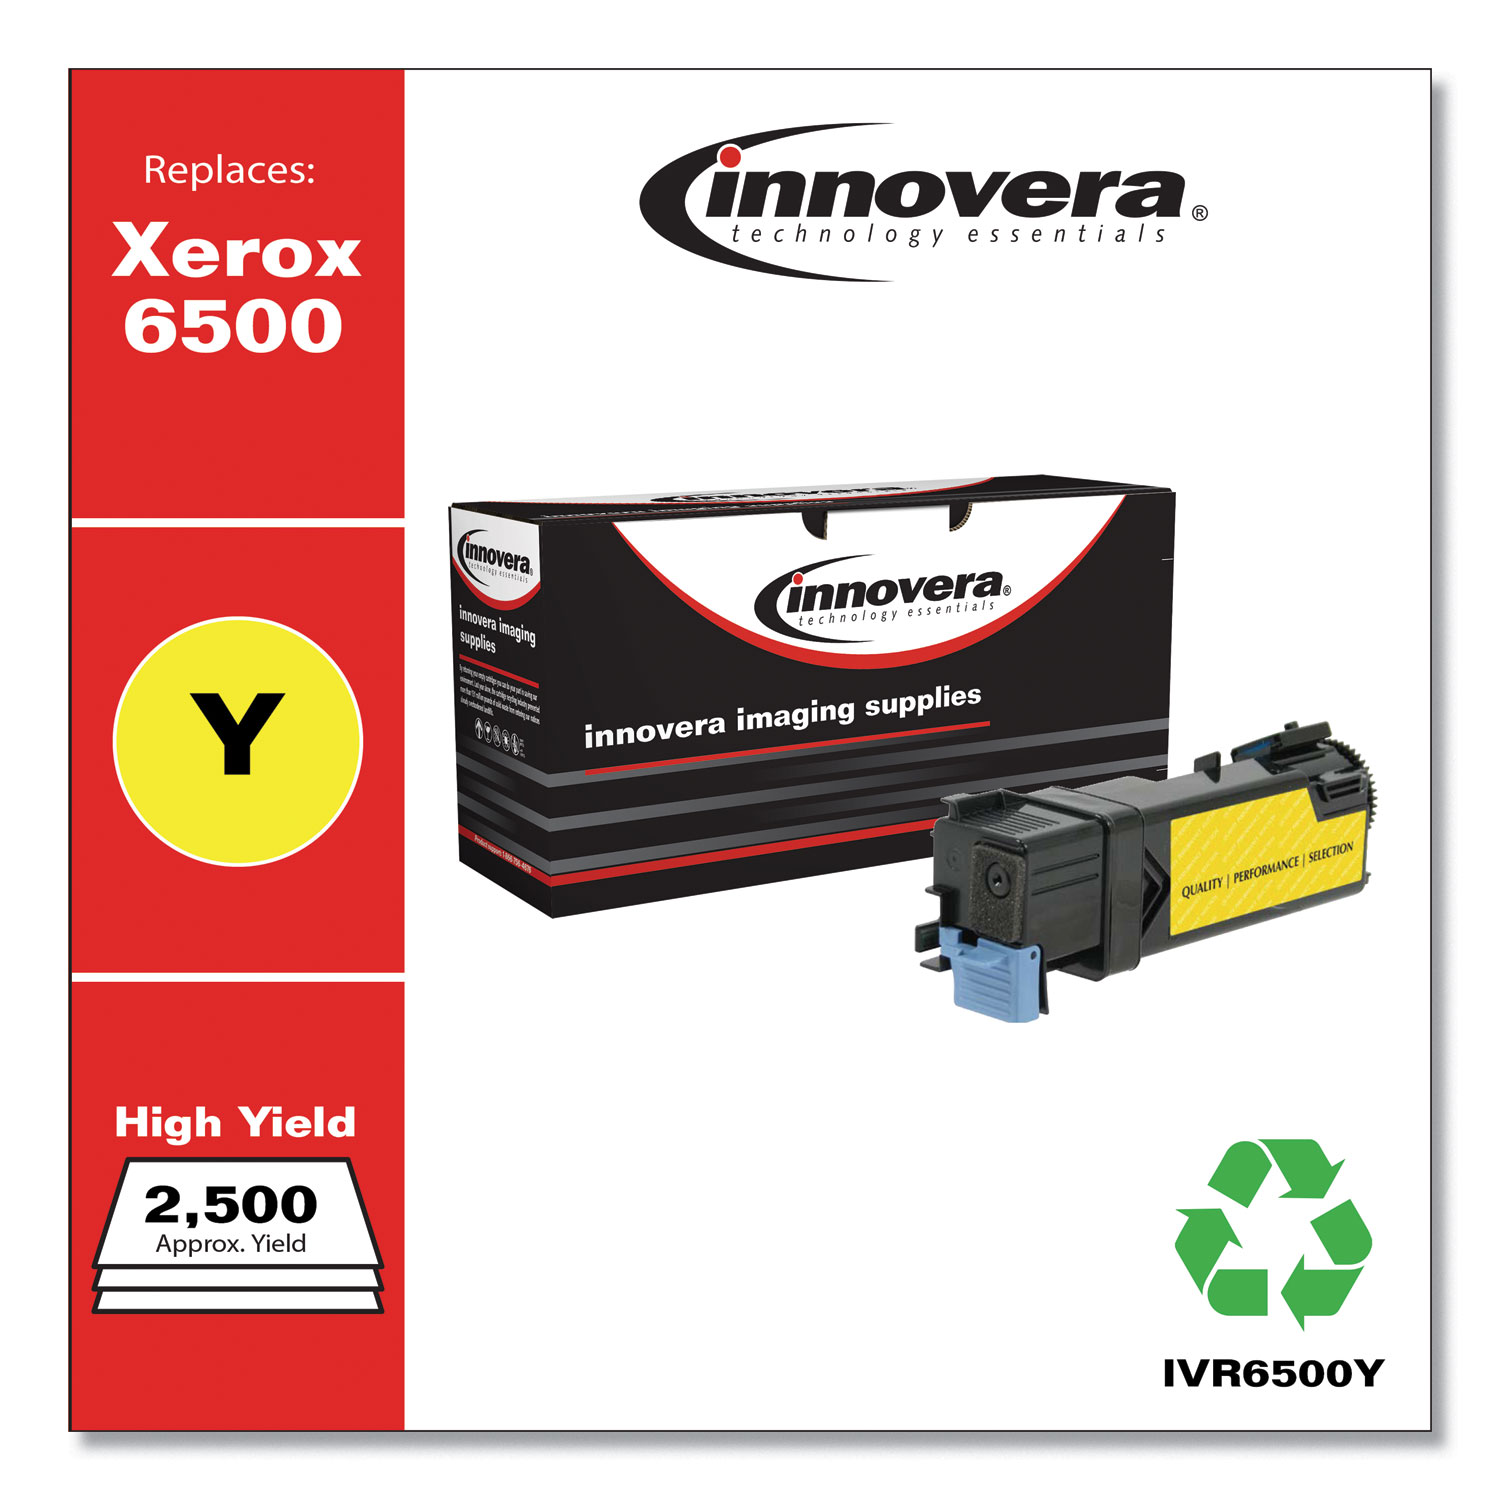 Remanufactured Yellow High-Yield Toner, Replacement for Xerox 6500 (106R01596), 2,500 Page-Yield IVR6500Y